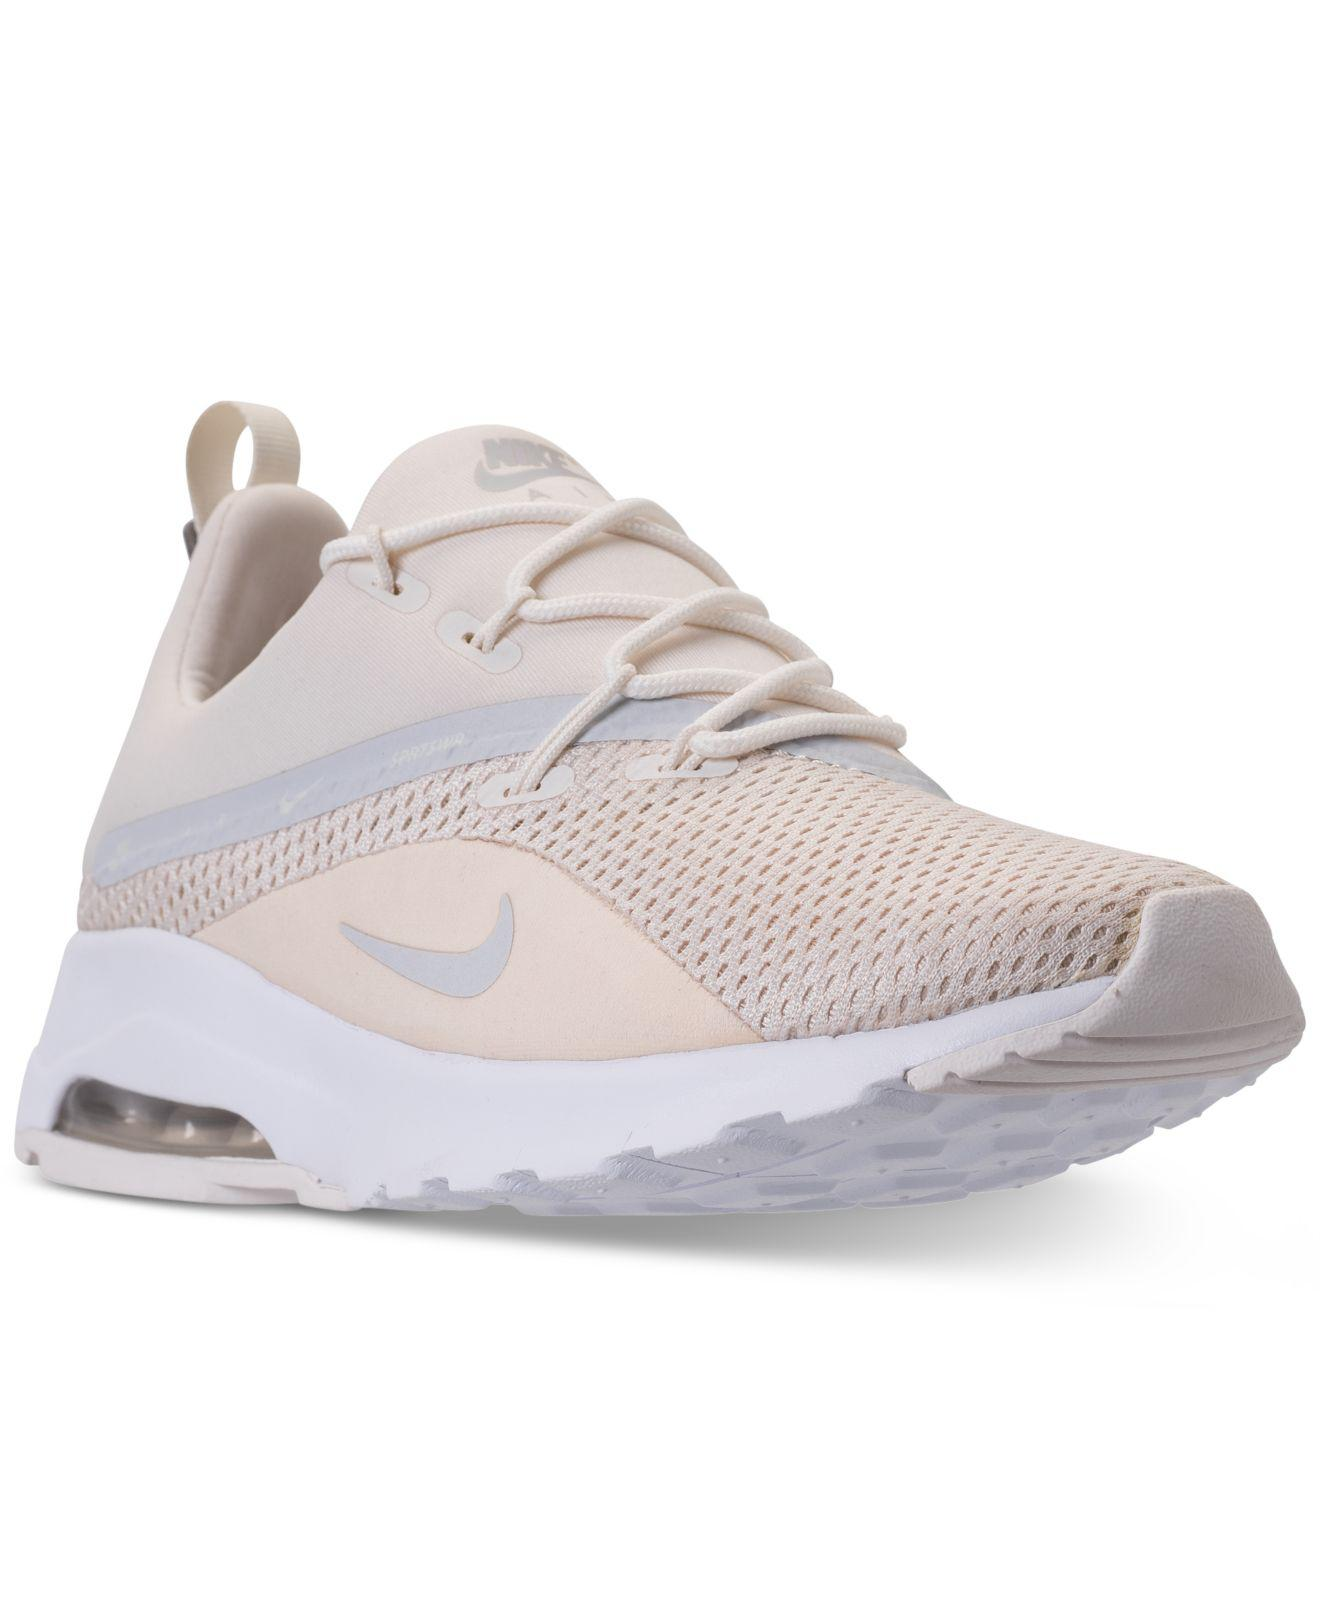 845c2bcd96 Nike Air Max Motion Racer 2 Running Sneakers From Finish Line - Lyst